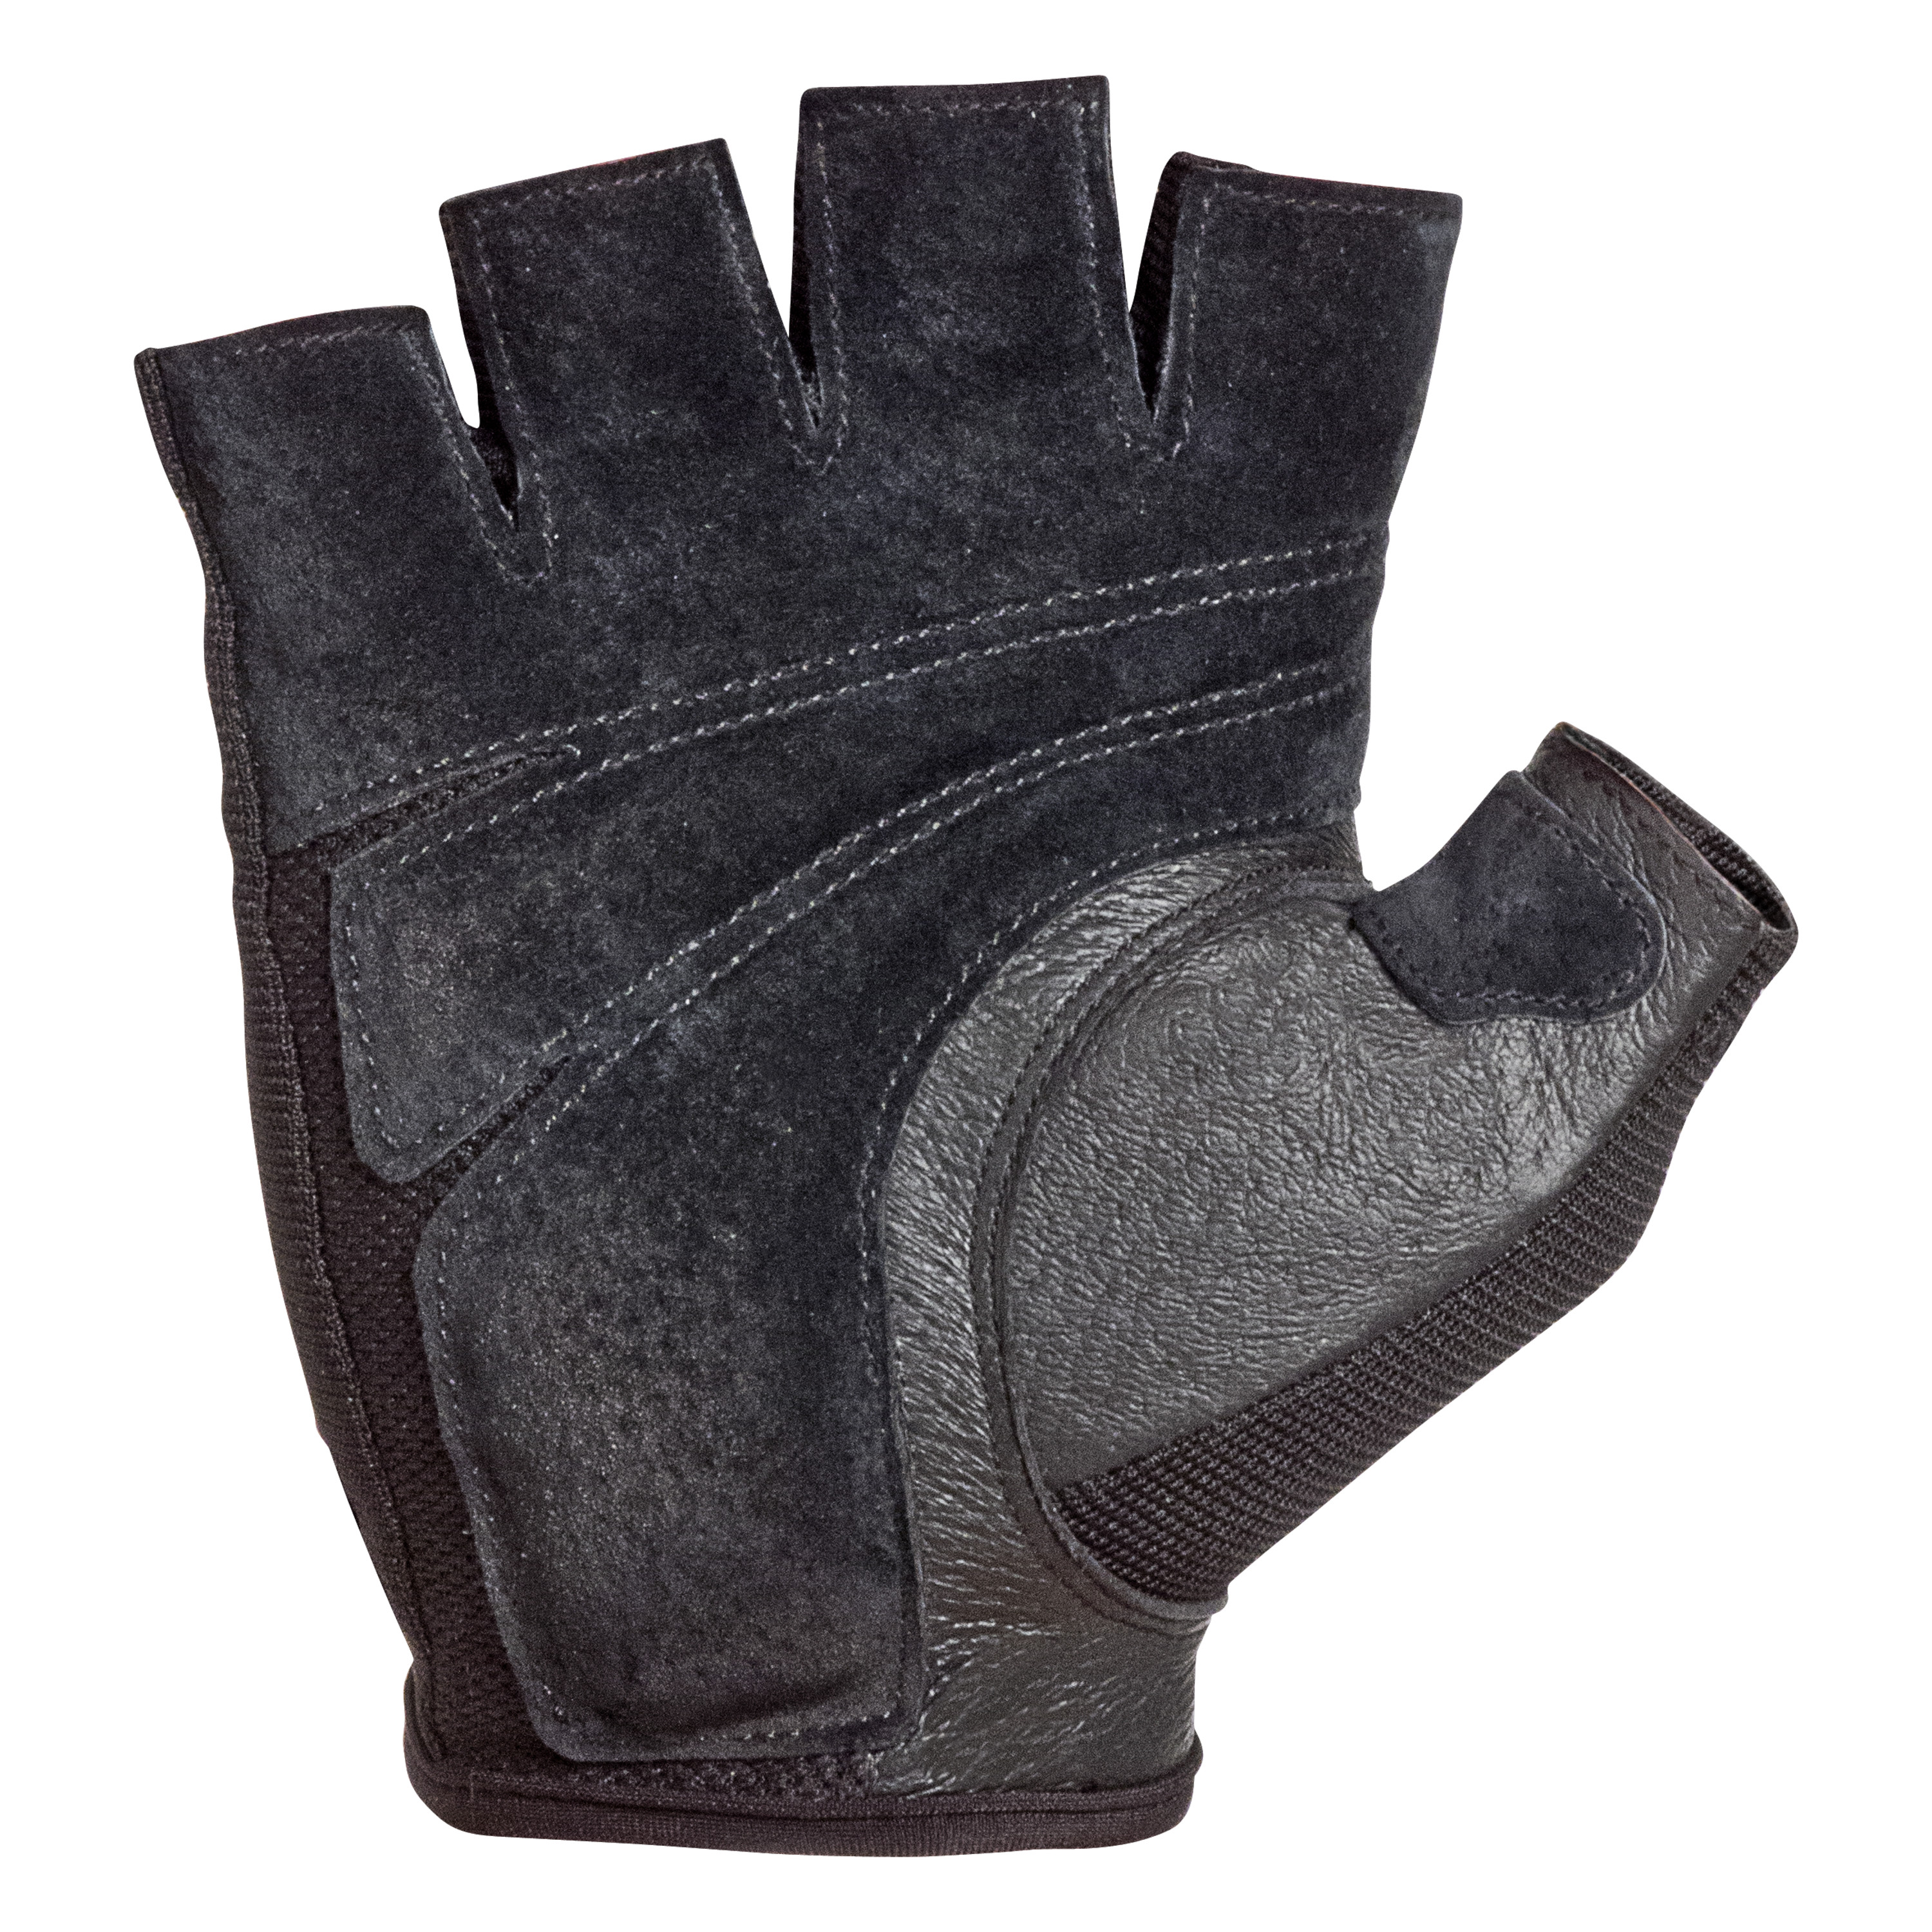 WEIGHT LIFTING GYM GLOVES BLACK LEATHER BRAND NEW MEN    XX-LARGE